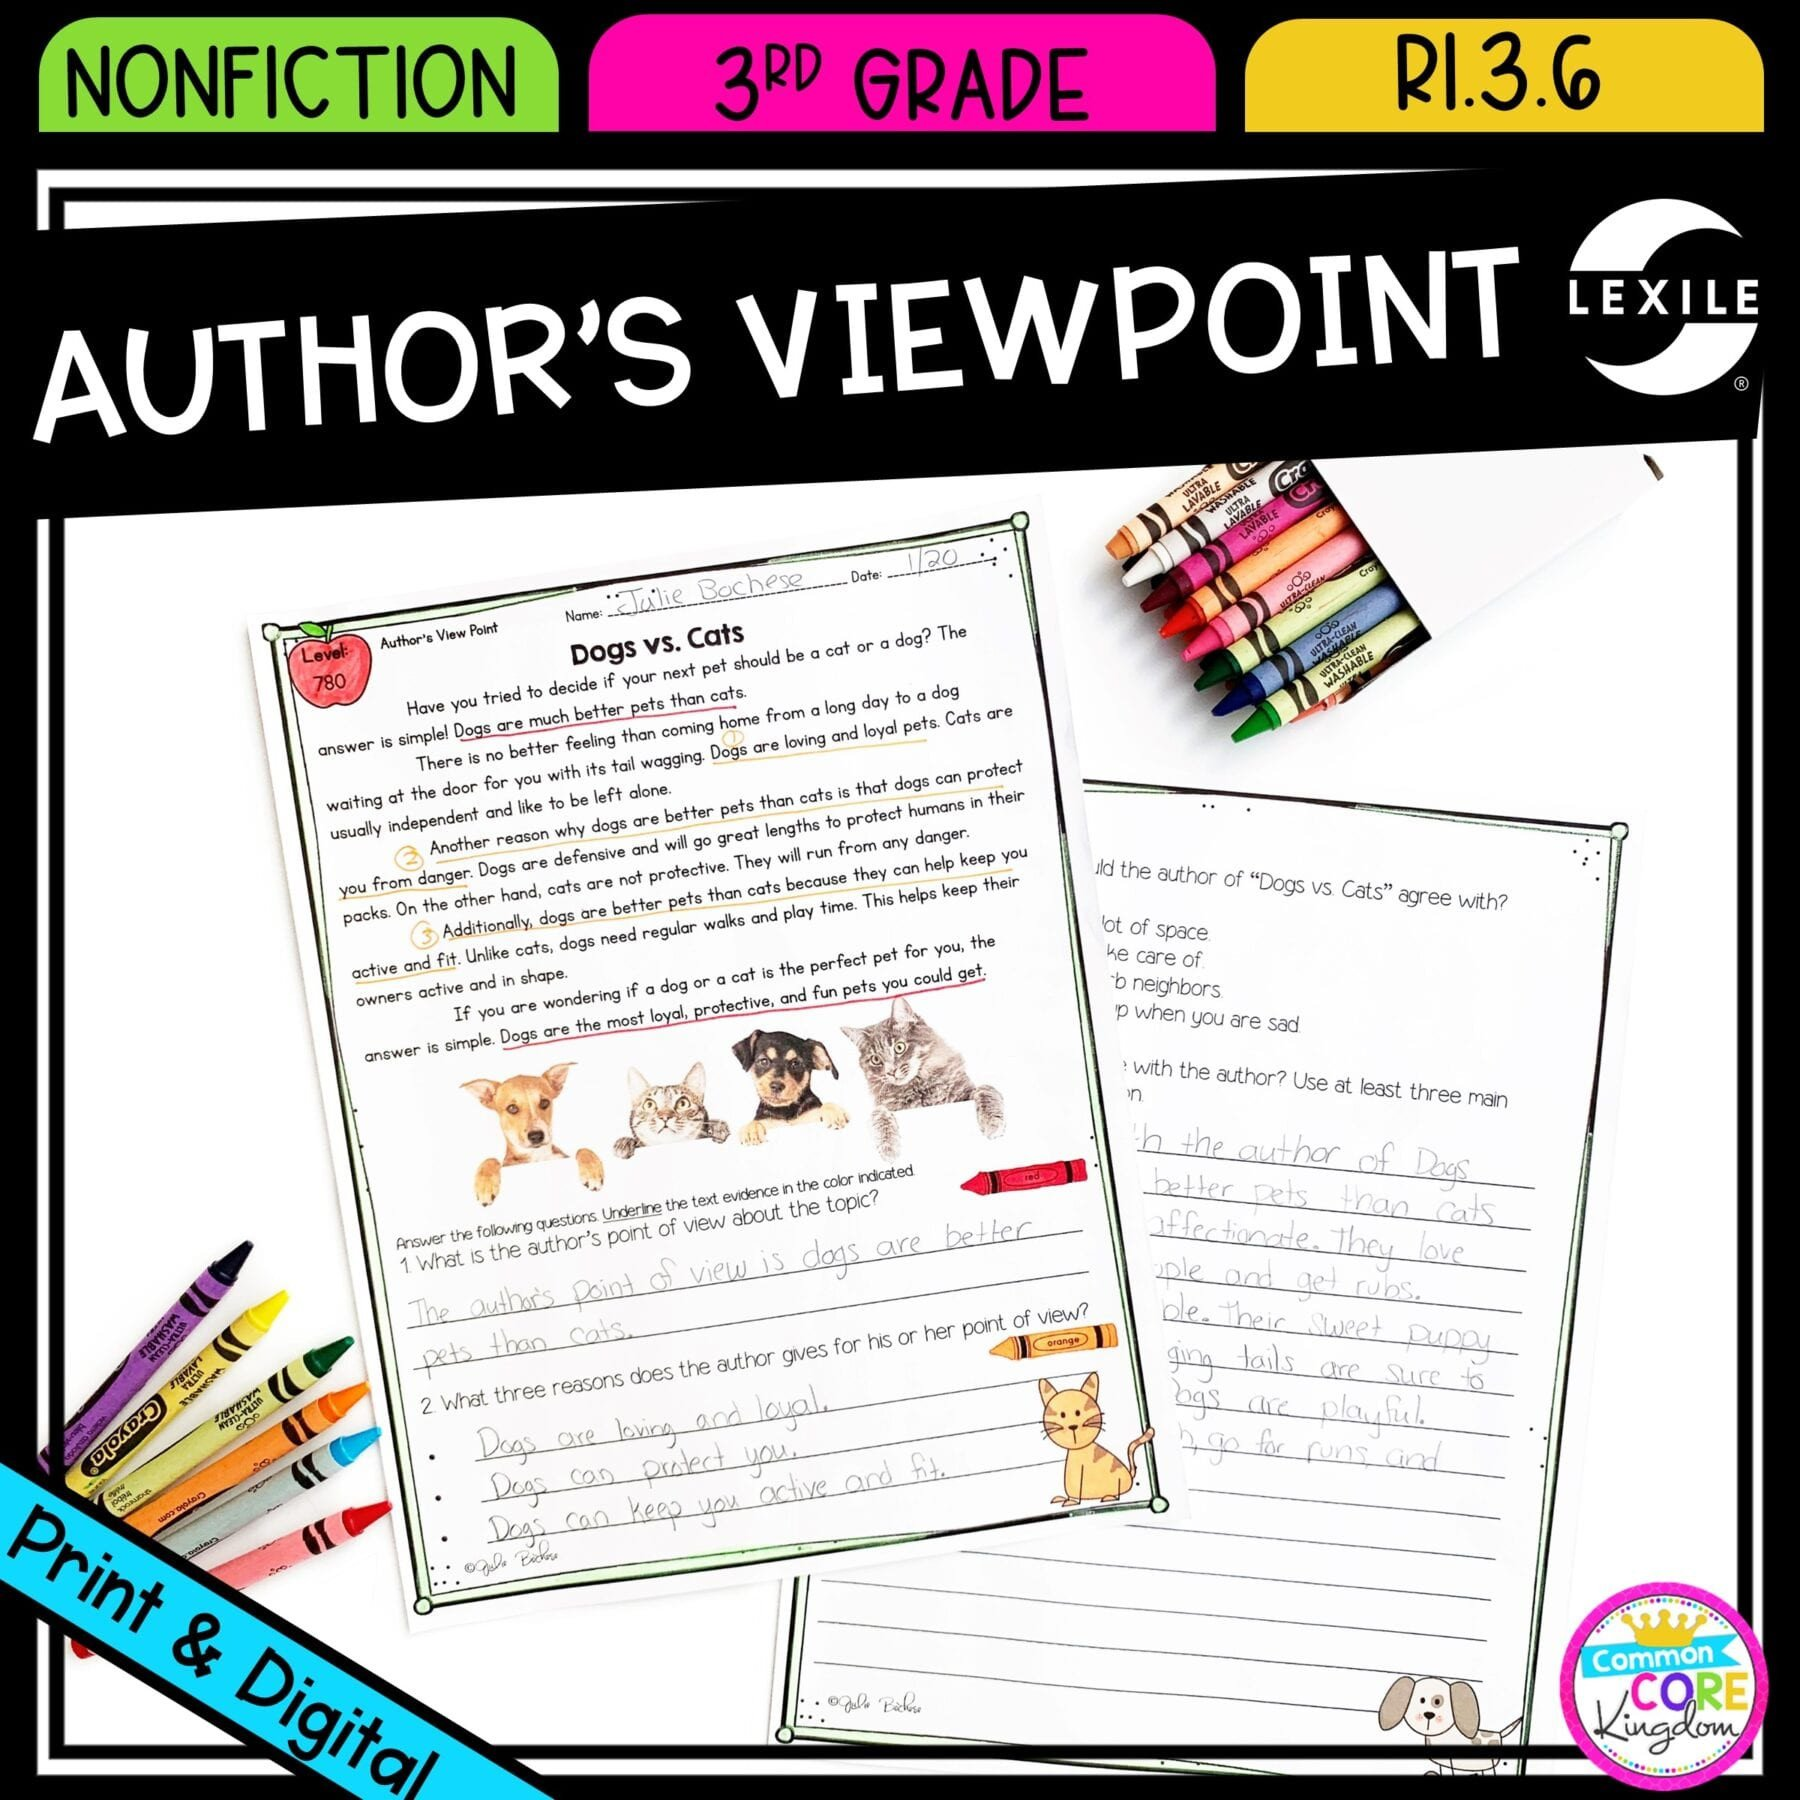 Text Evidence Worksheets 3rd Grade Author S Viewpoint In Nonfiction Ri 3 6 Printable & Digital Google Slides Distance Learning Pack